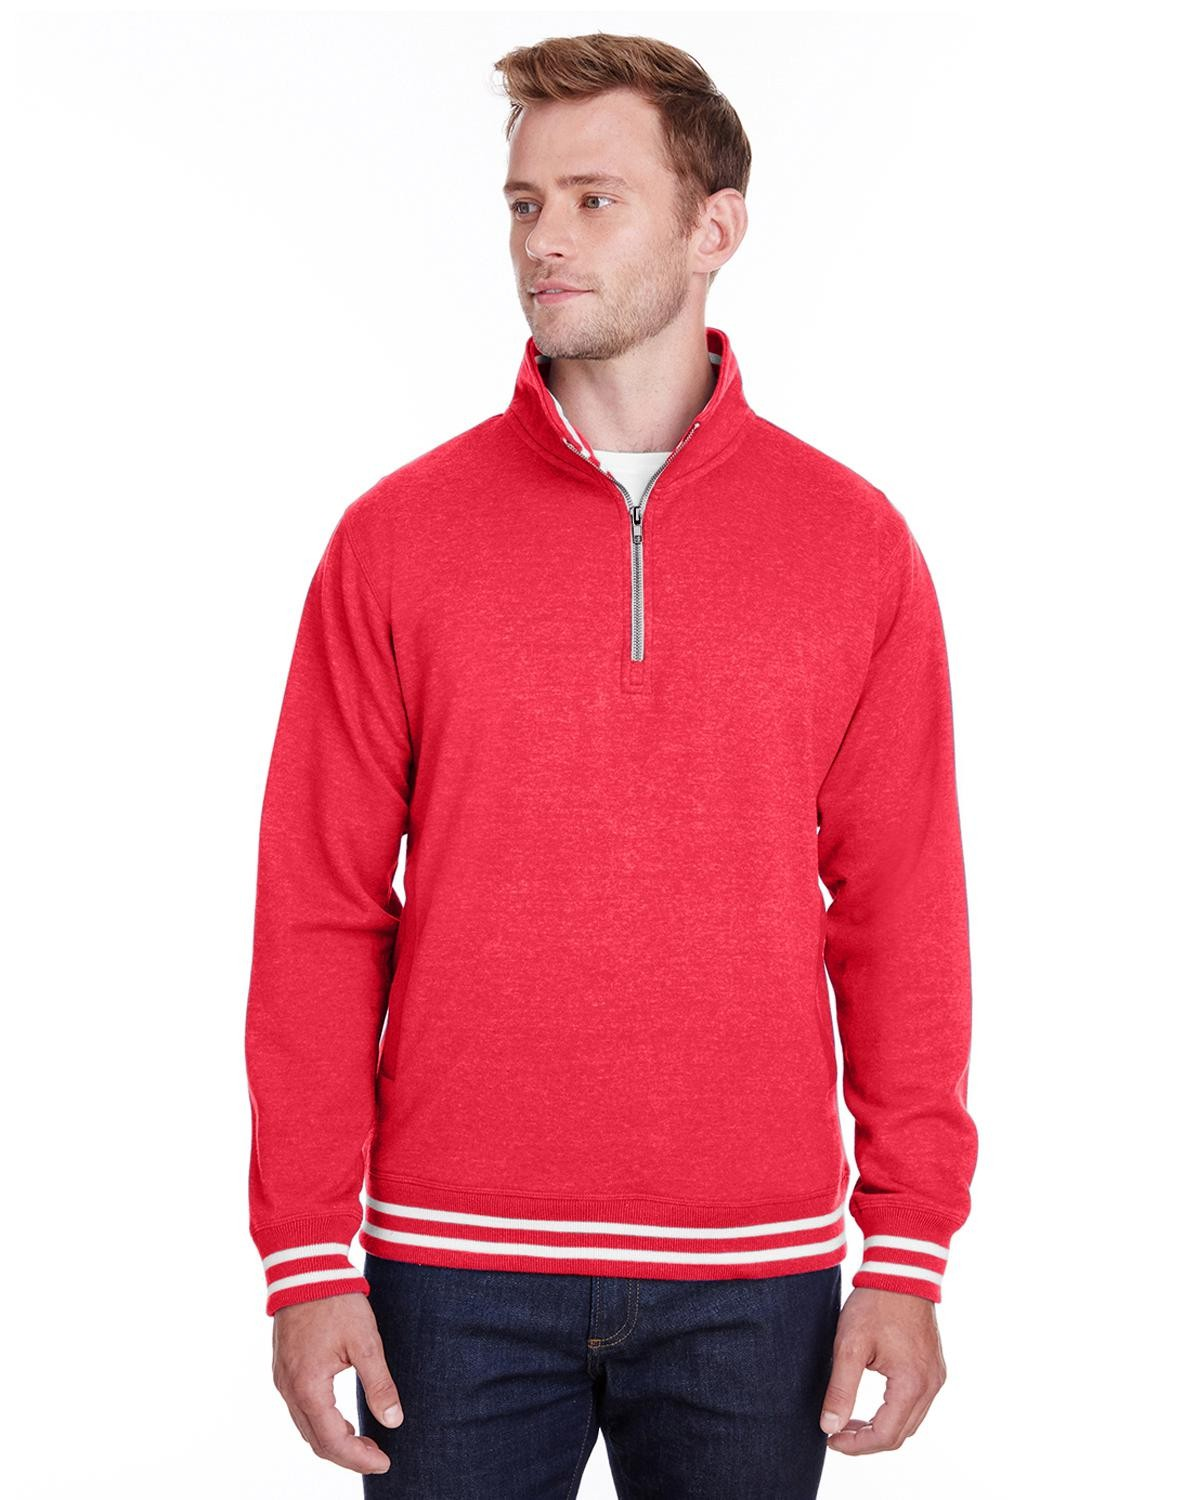 J America JA8650 Men's Relay Quarter-Zip - Red - S from J America